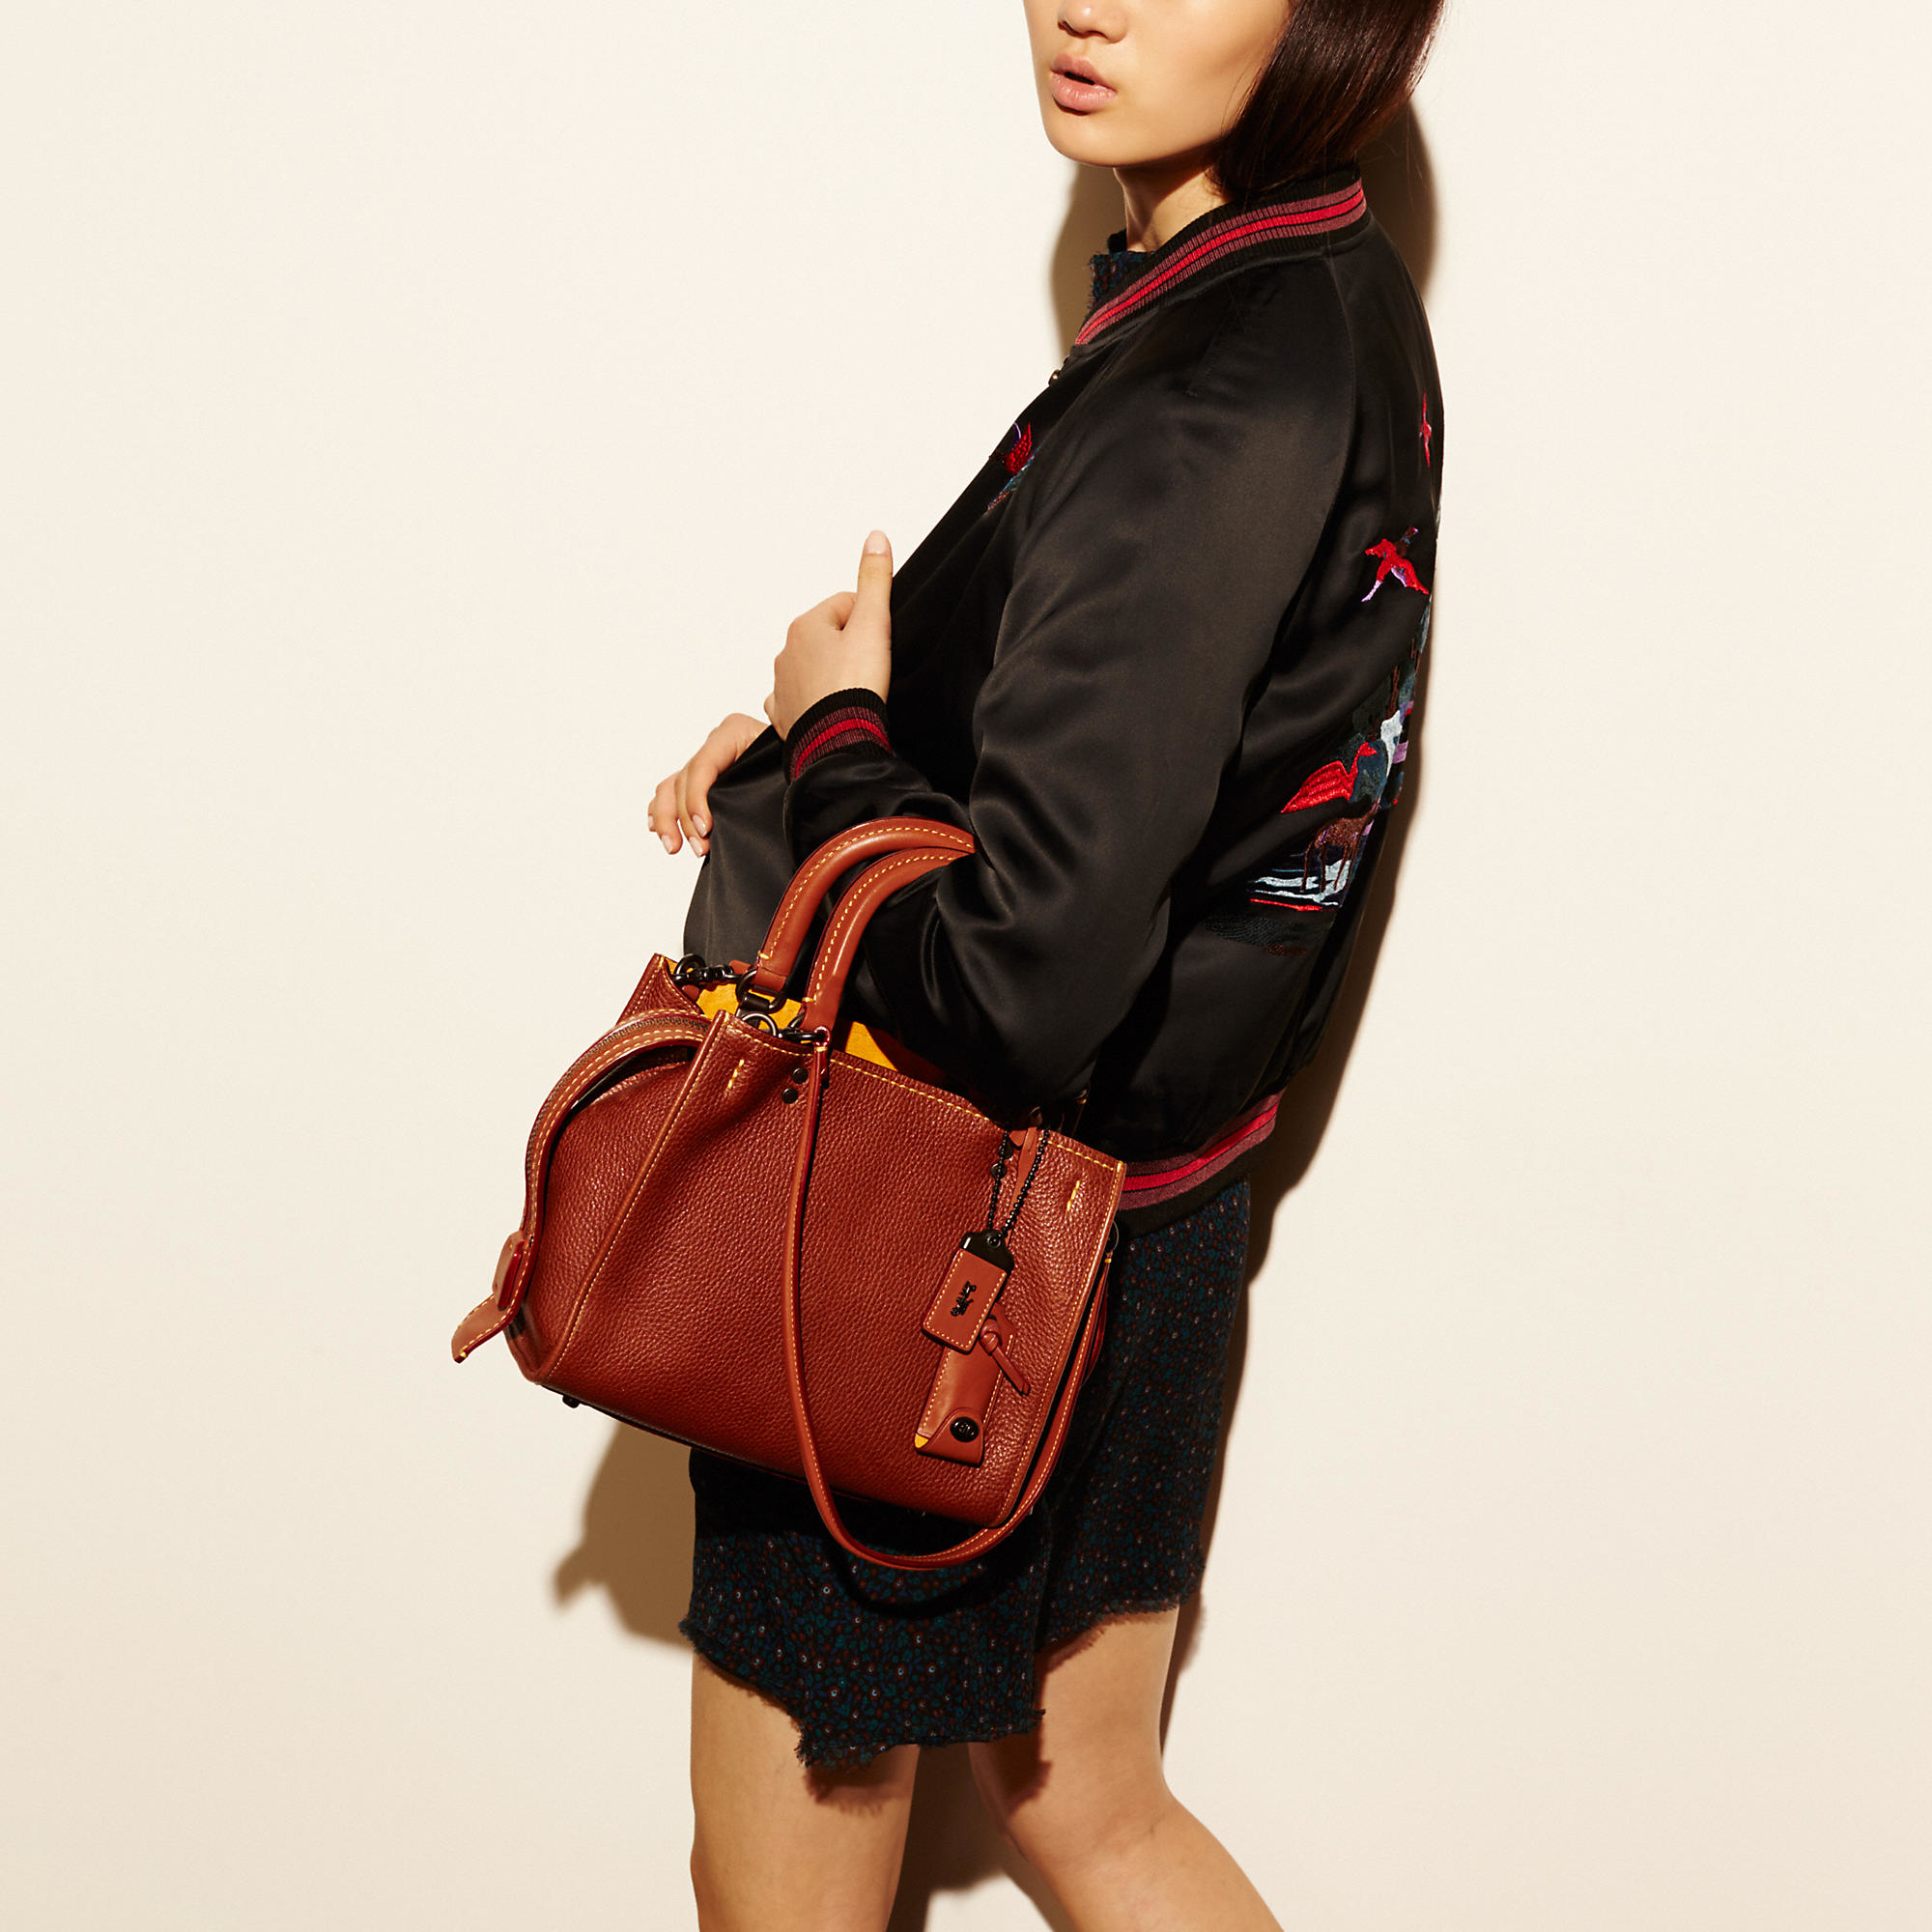 Lyst Coach Rogue Bag 25 In Glovetanned Pebble Leather In